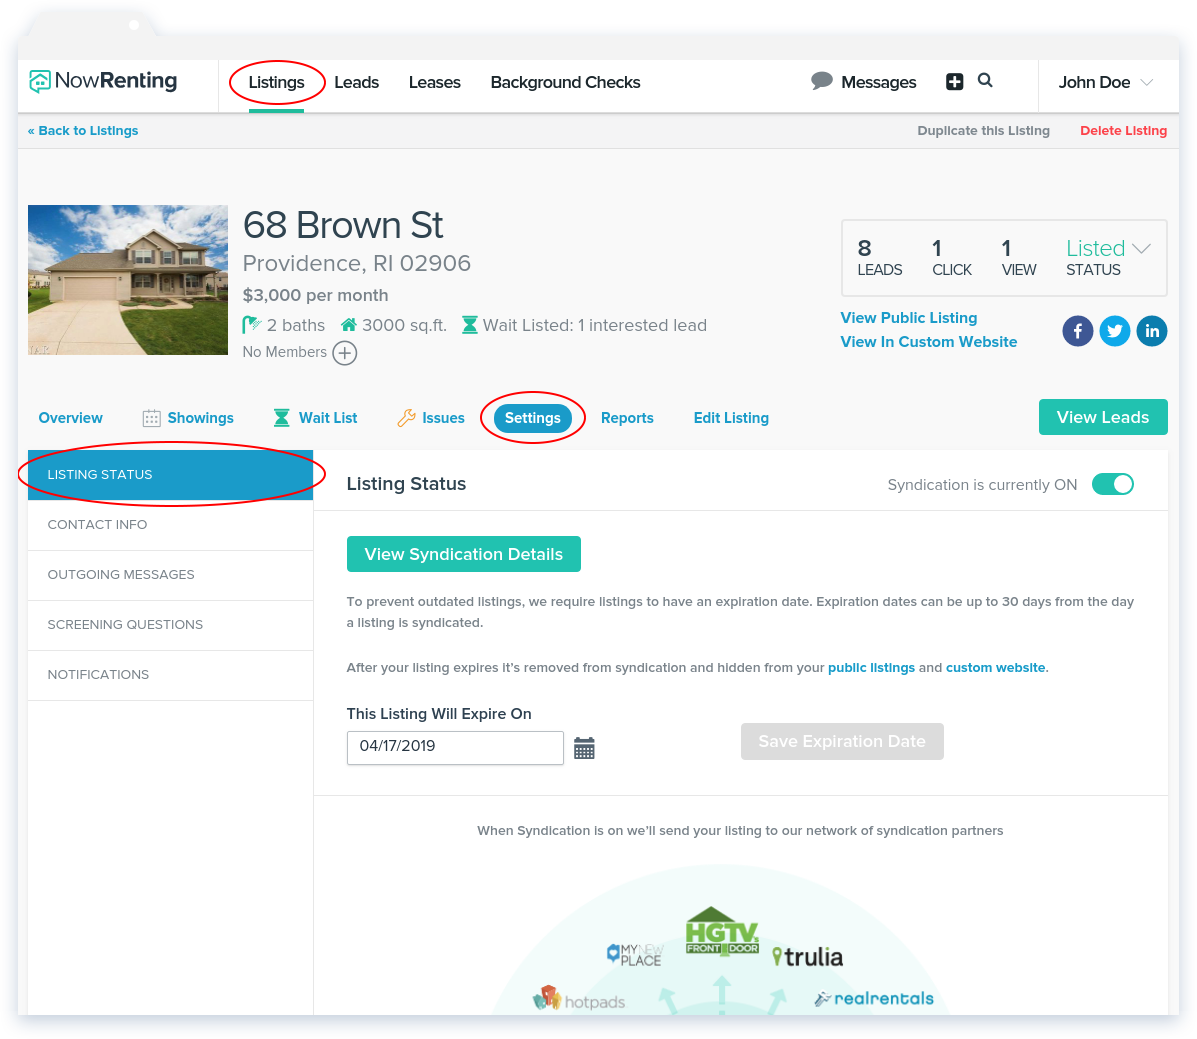 NowRenting: Listing Status Navigation